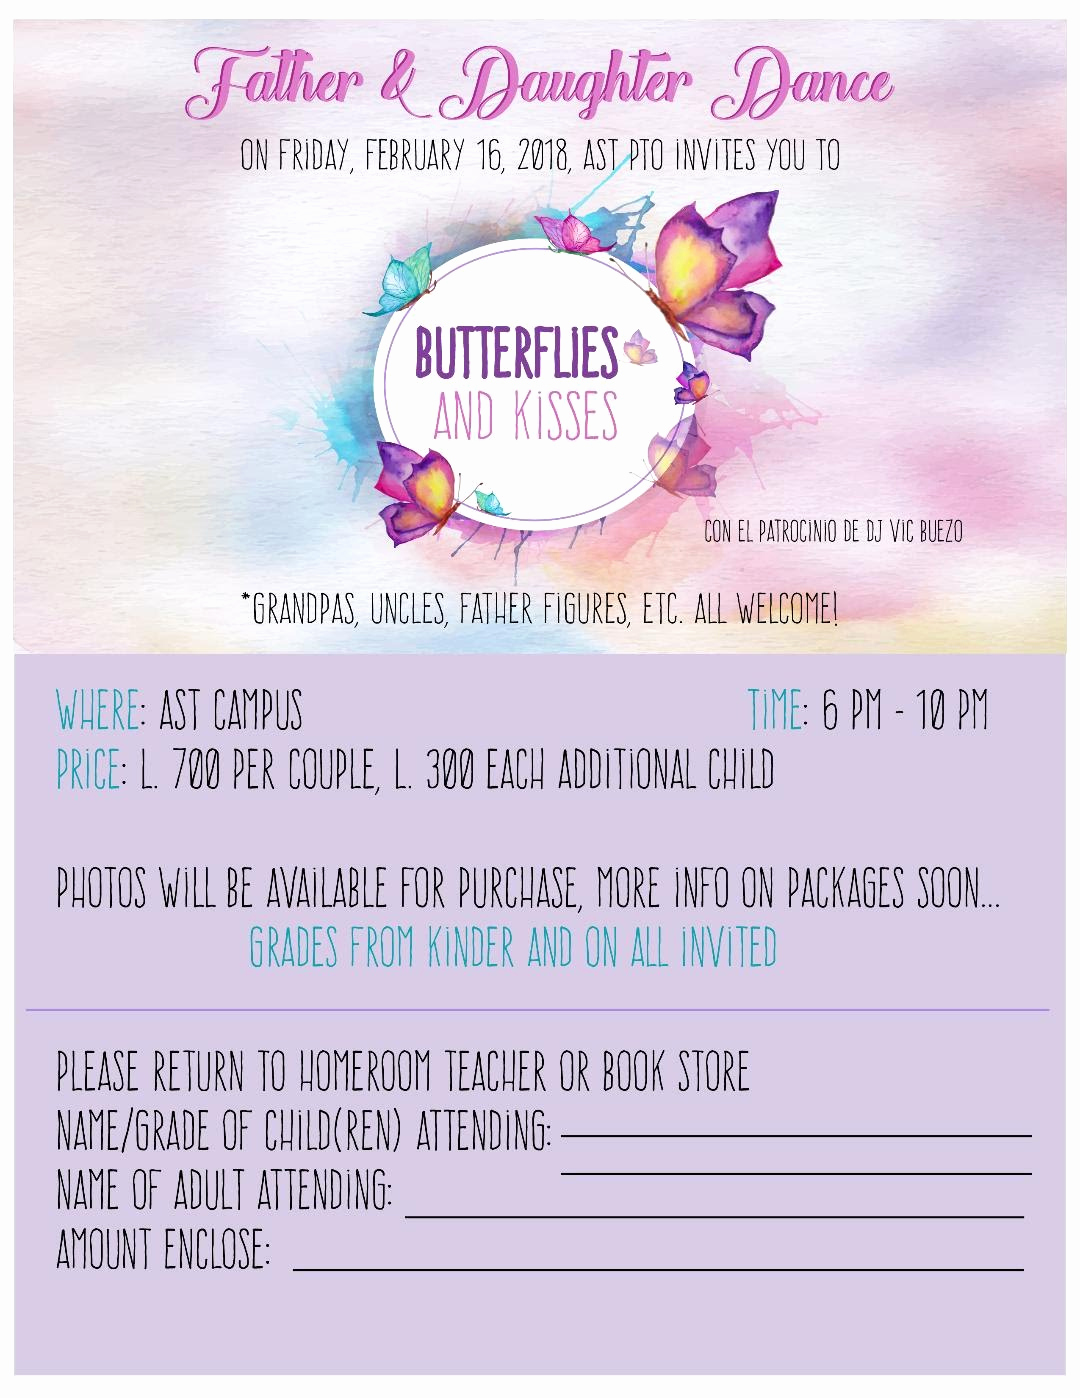 Father Daughter Dance Invitation Awesome 1 A Mrs Matamoros Ms Casco